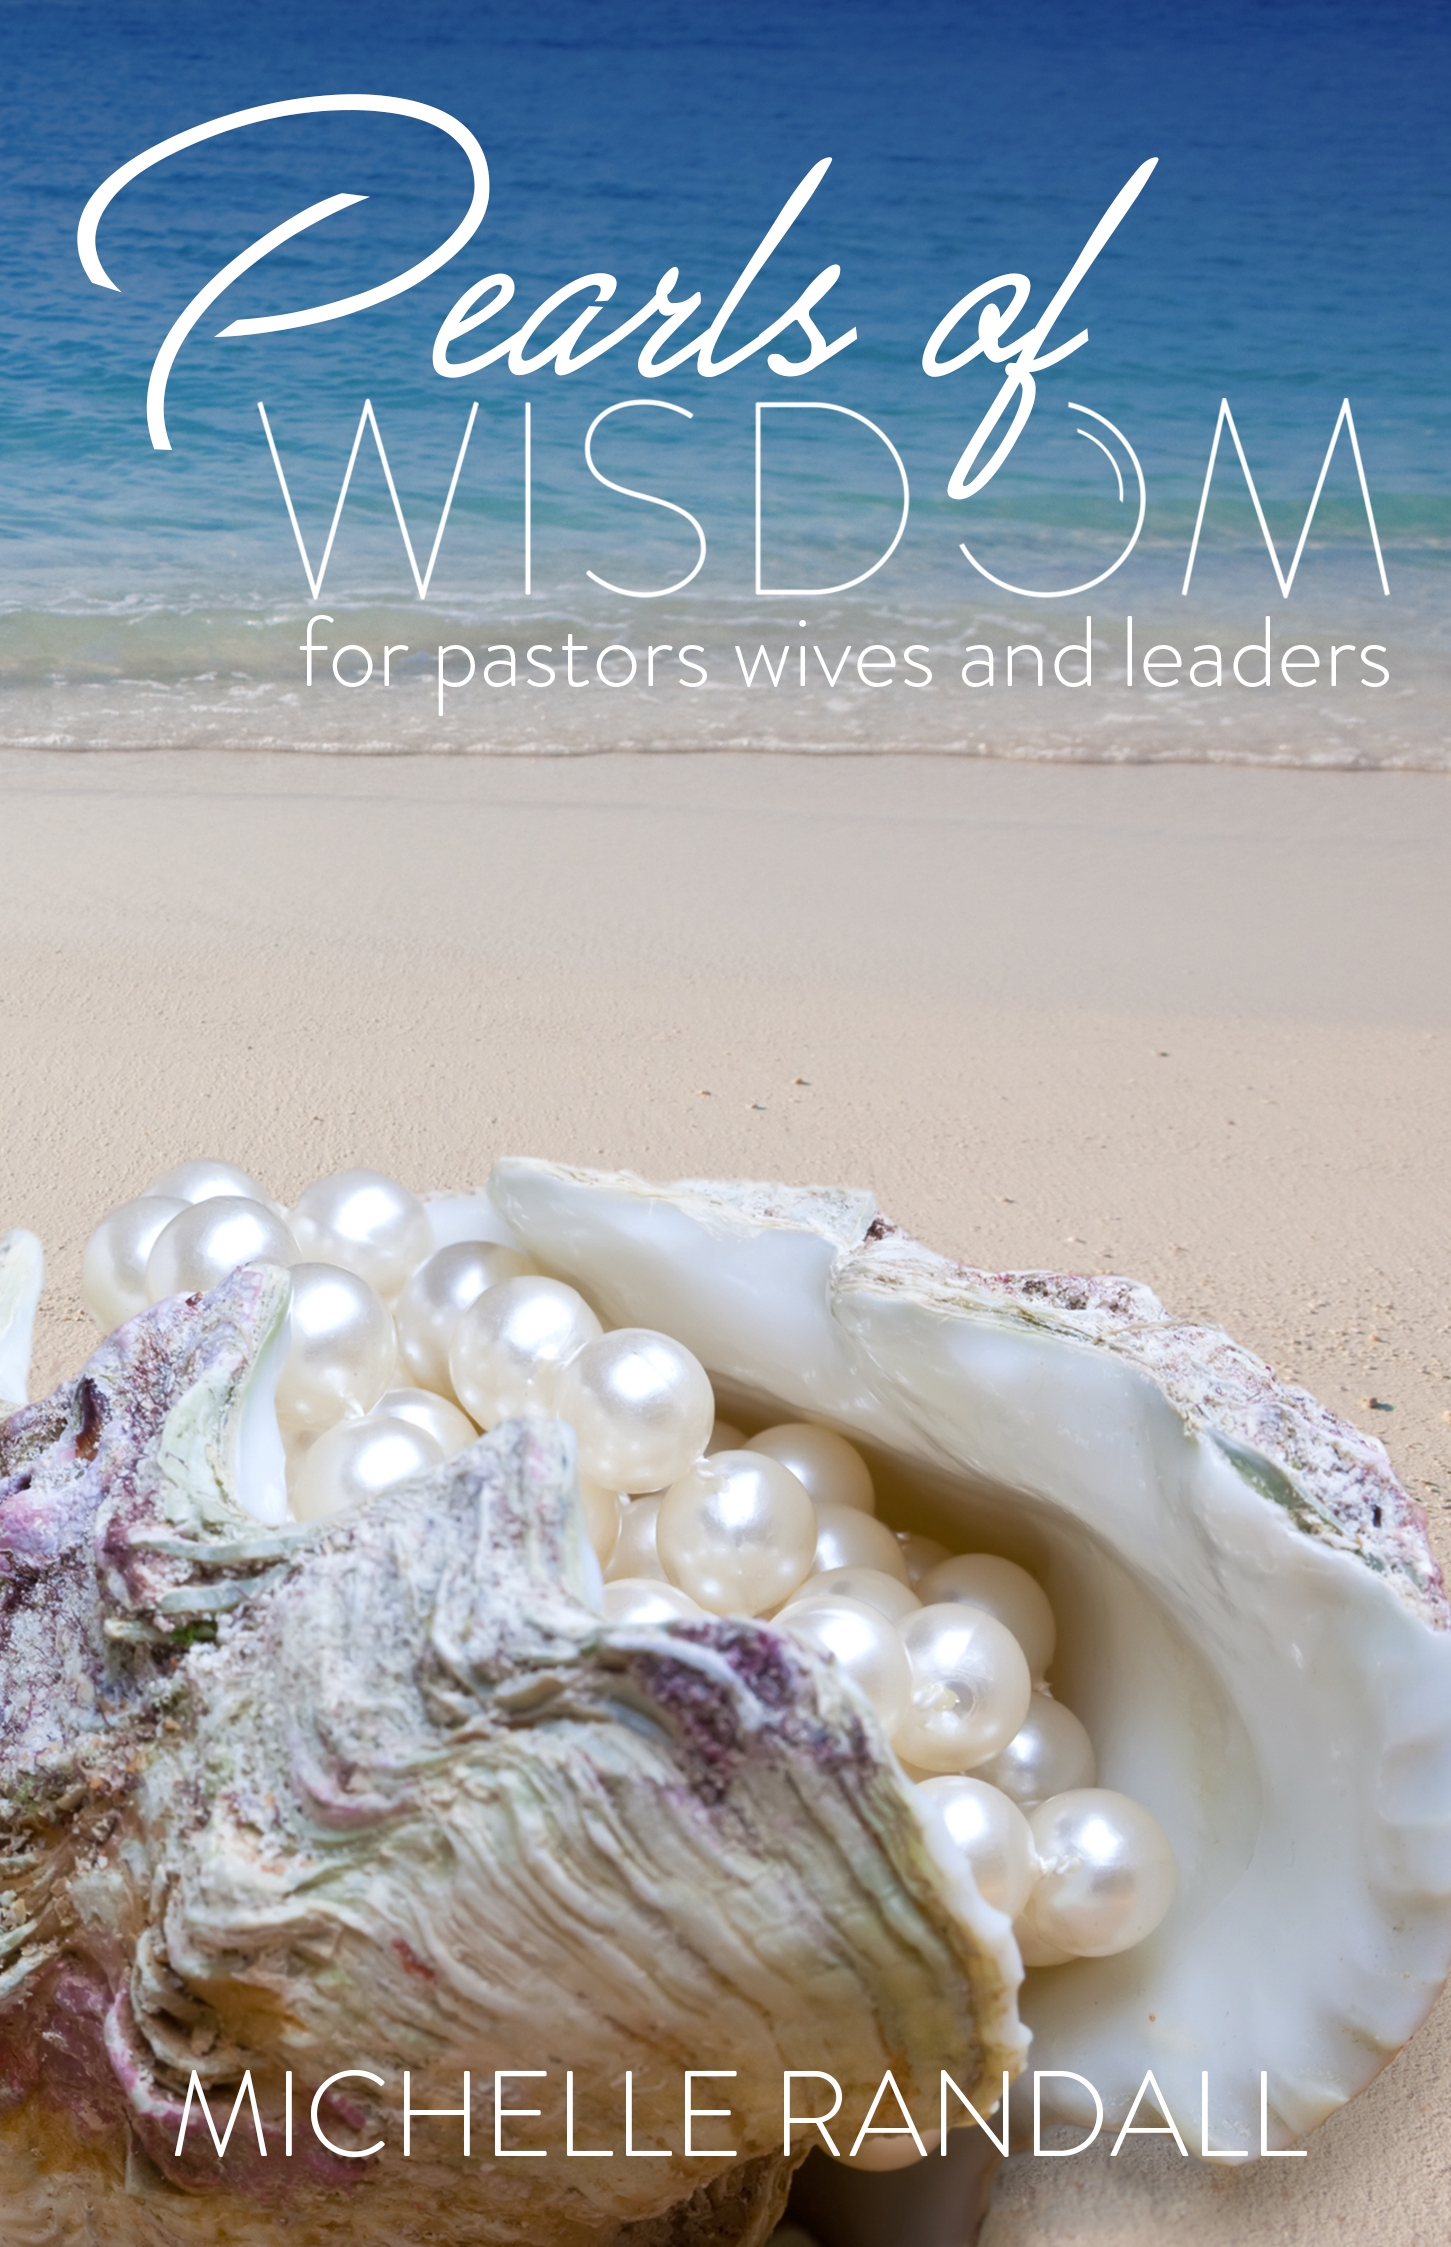 Pearls of Wisdom for Pastors' Wives